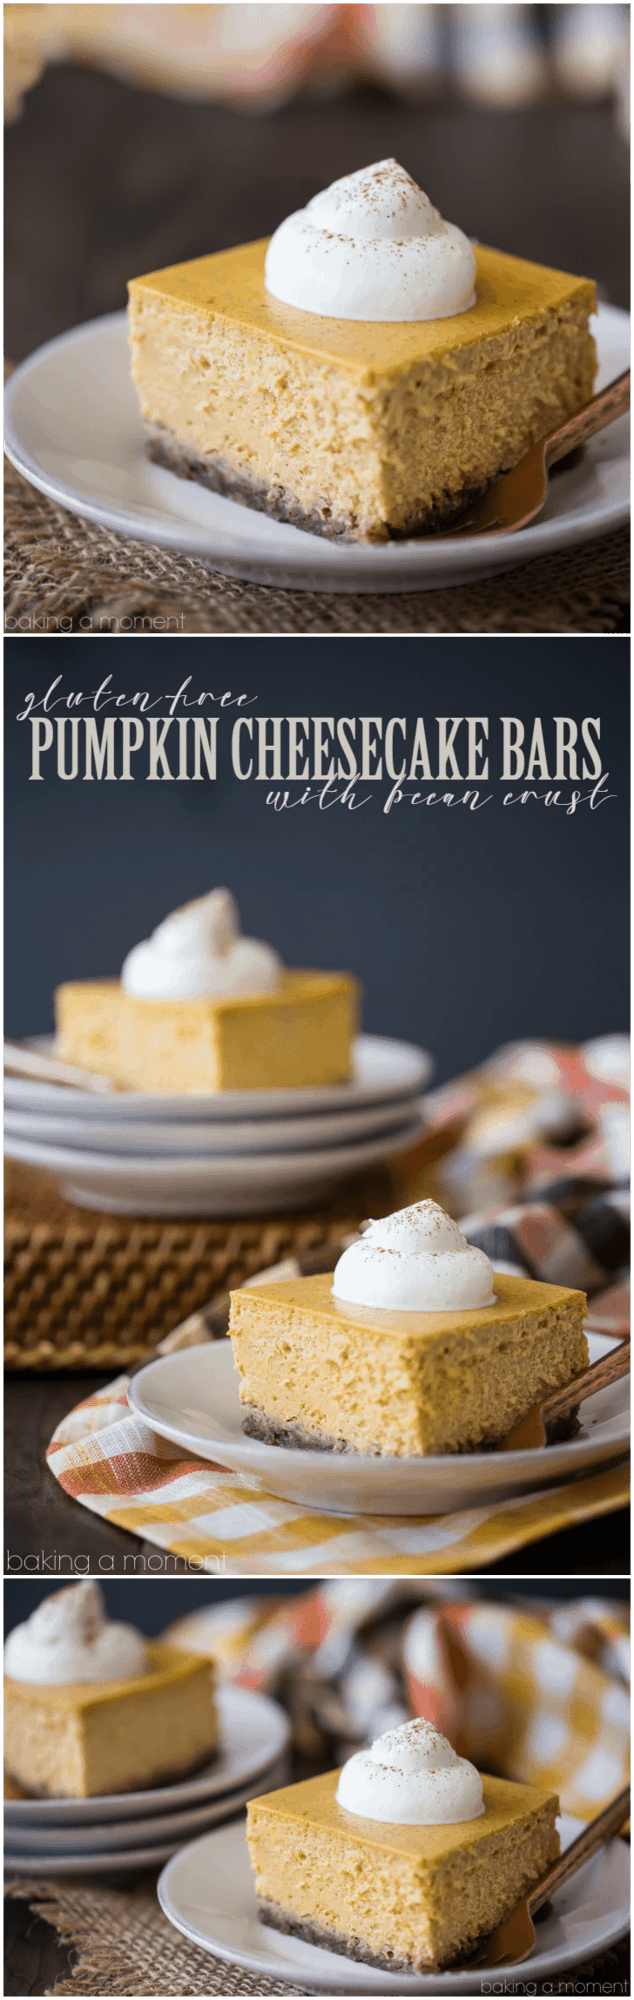 Pumpkin Cheesecake Bars: Cool, creamy, and infused with real pumpkin & spice. Loved that these were naturally gluten-free, that nutty crust is perfection!